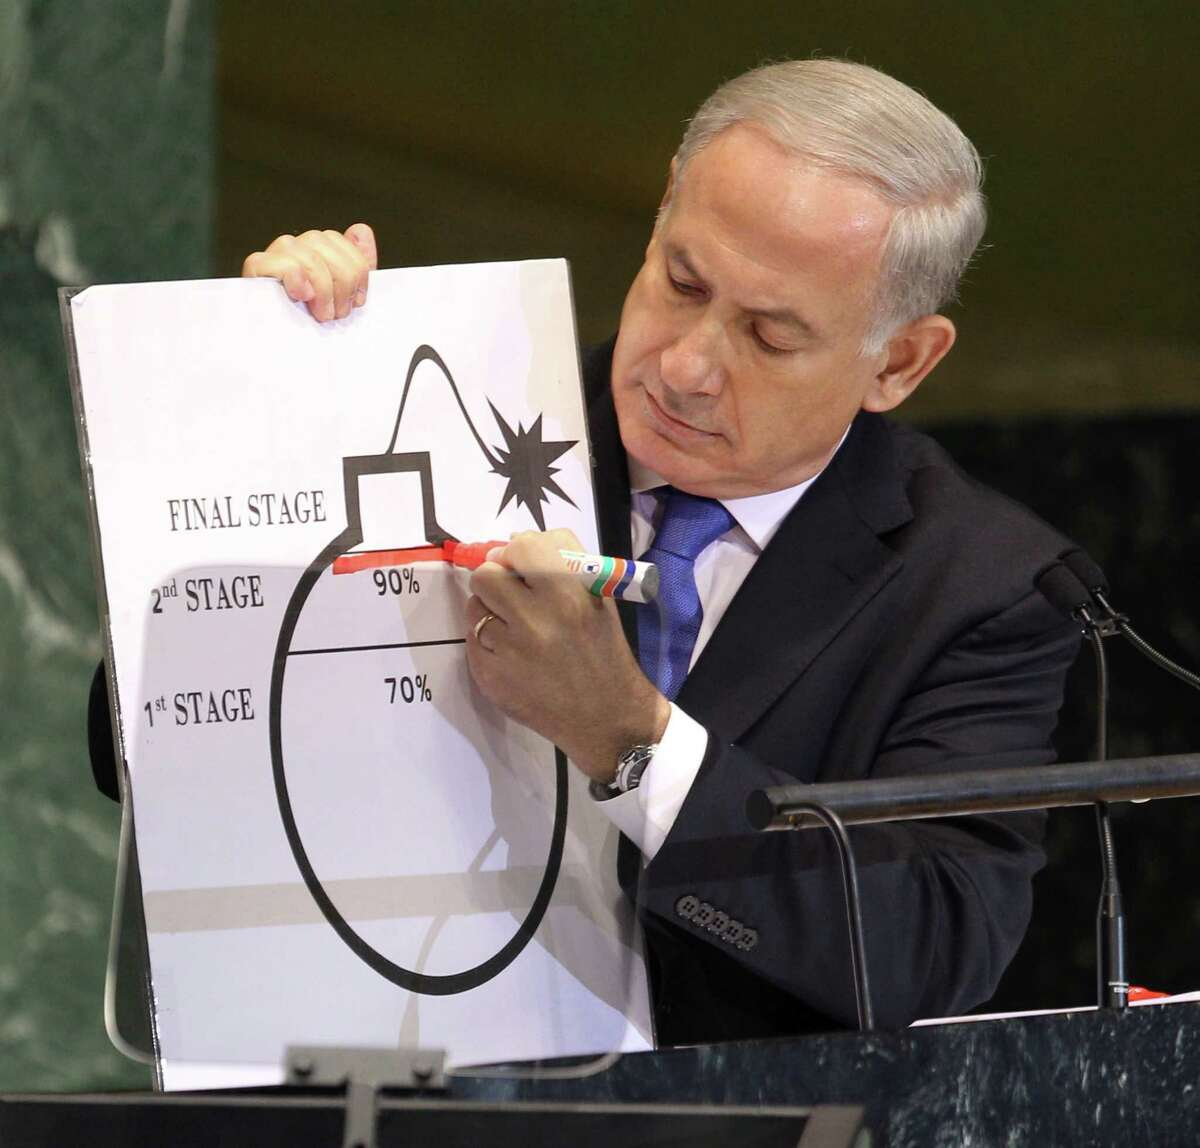 Prime Minister Benjamin Netanyahu of Israel shows an illustration as he describes his concerns over Iran's nuclear ambitions during his address to the United Nations General Assembly on Thursday.